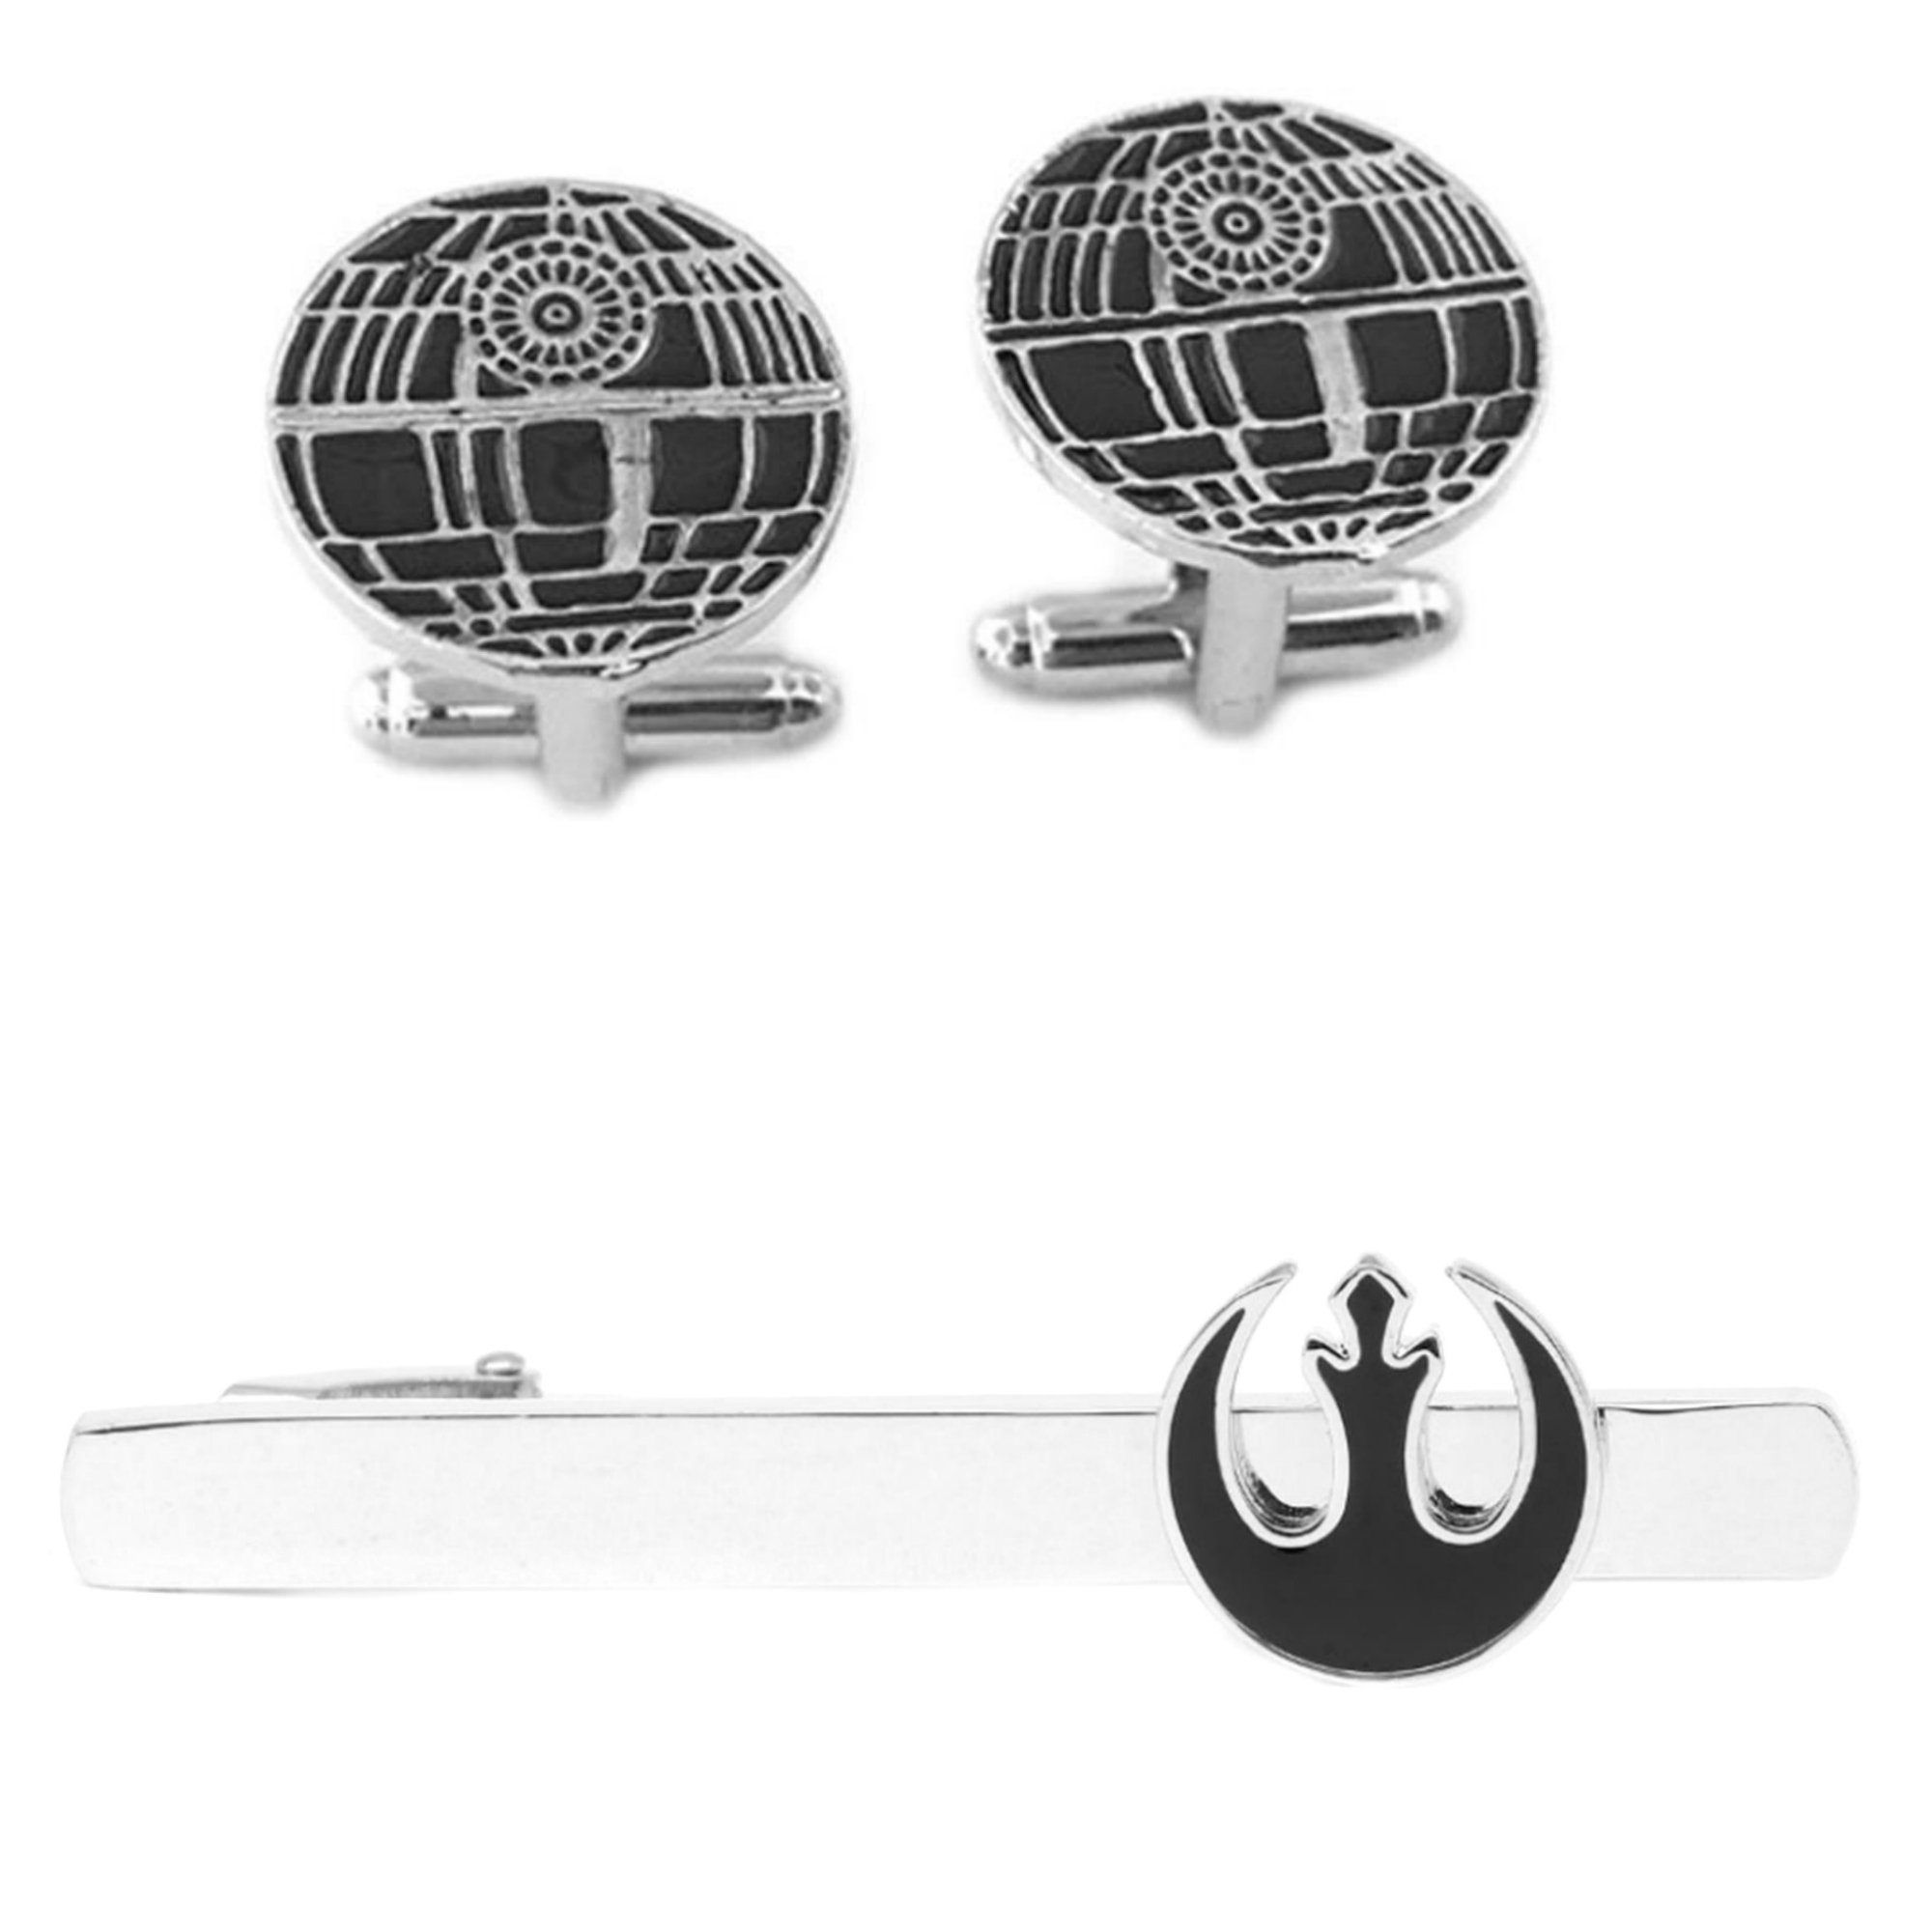 Outlander Death Star Cufflink & Rebel Black Tiebar - New 2018 Star Wars Movies - Set of 2 Wedding Logo w/Gift Box